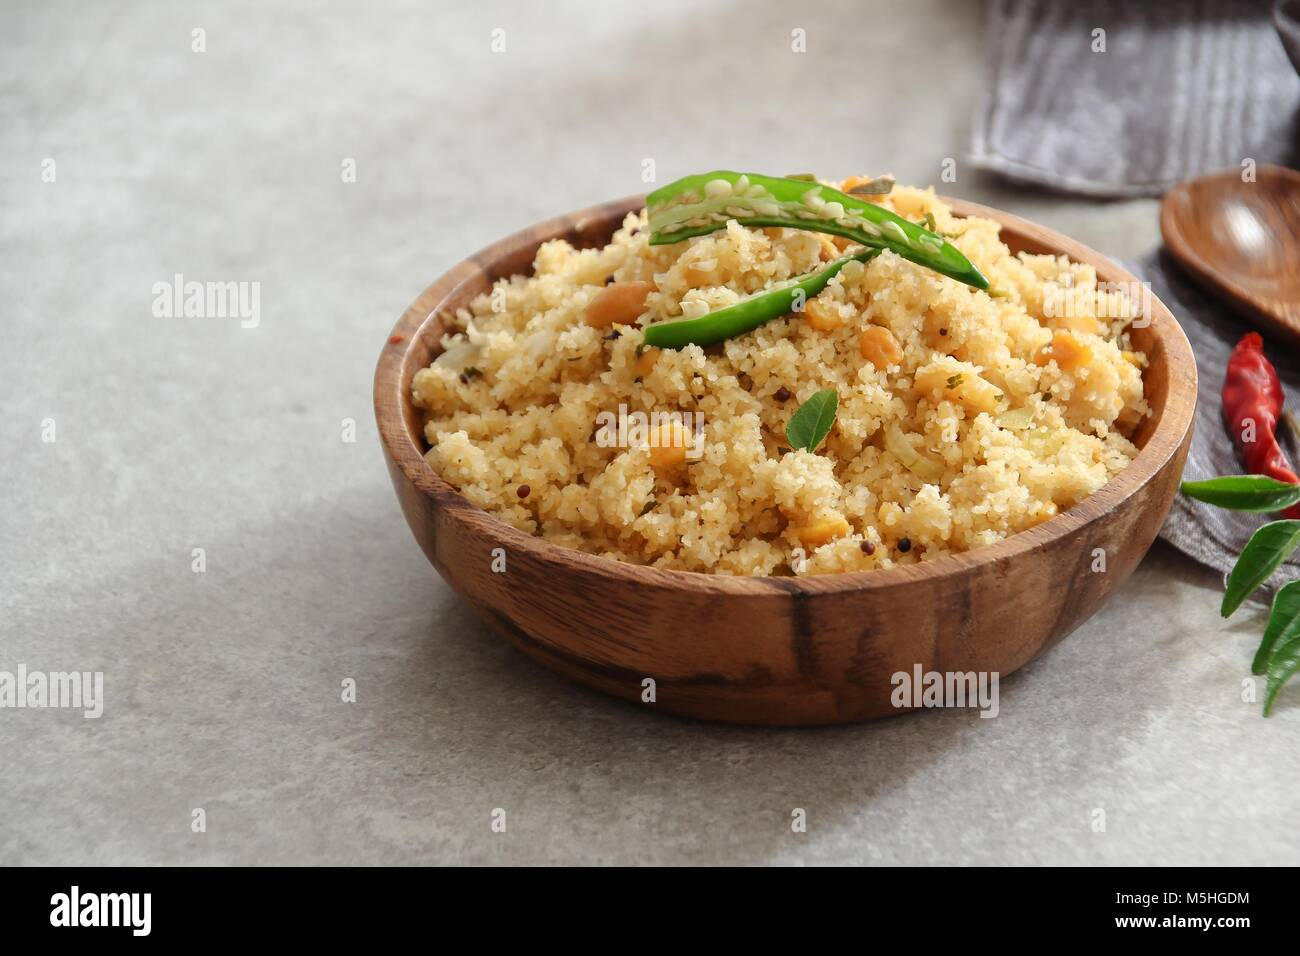 Rava Upma - south indian breakfast with semolina served in a wooden bowl - Stock Image